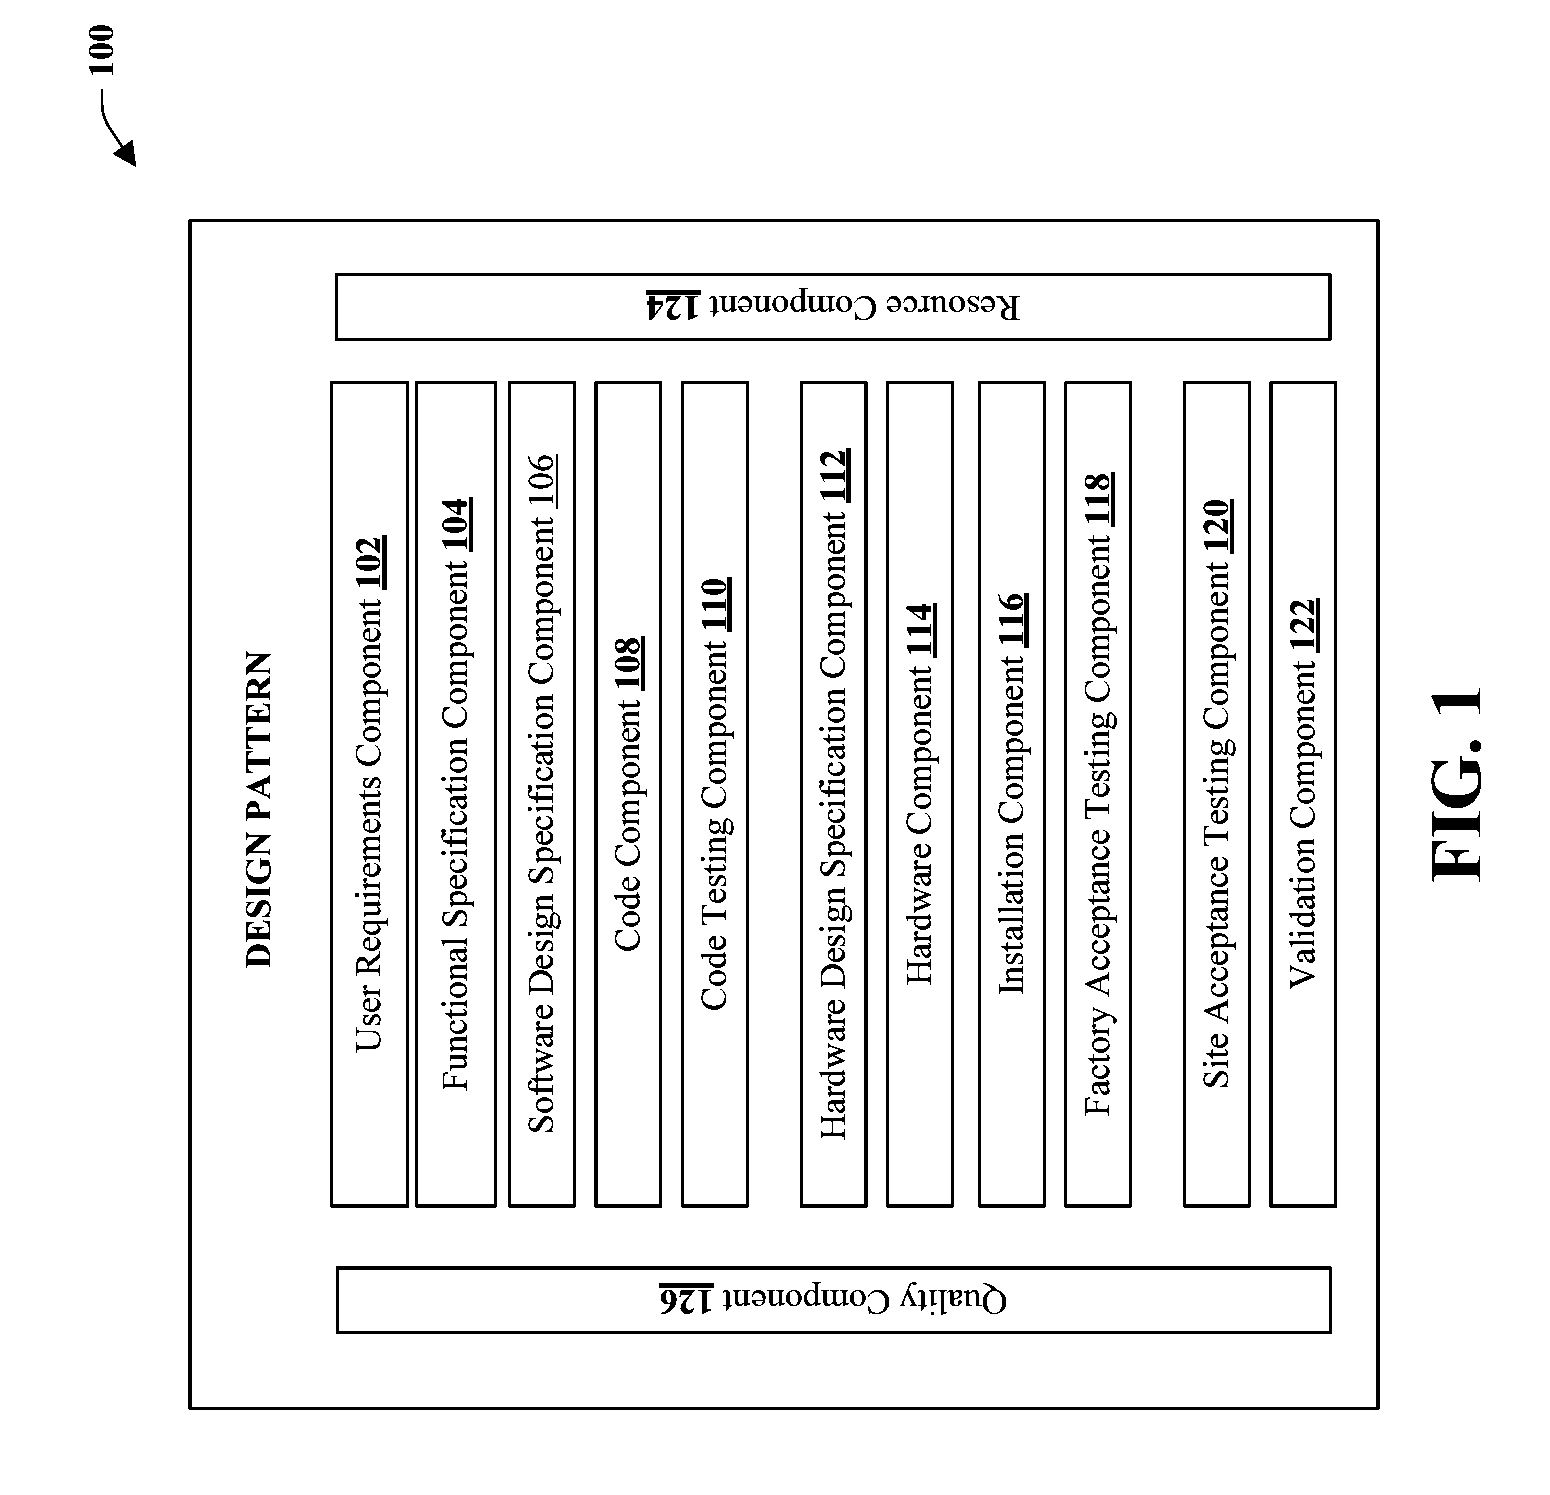 patent specification template - patent us20090327991 industry template customization and